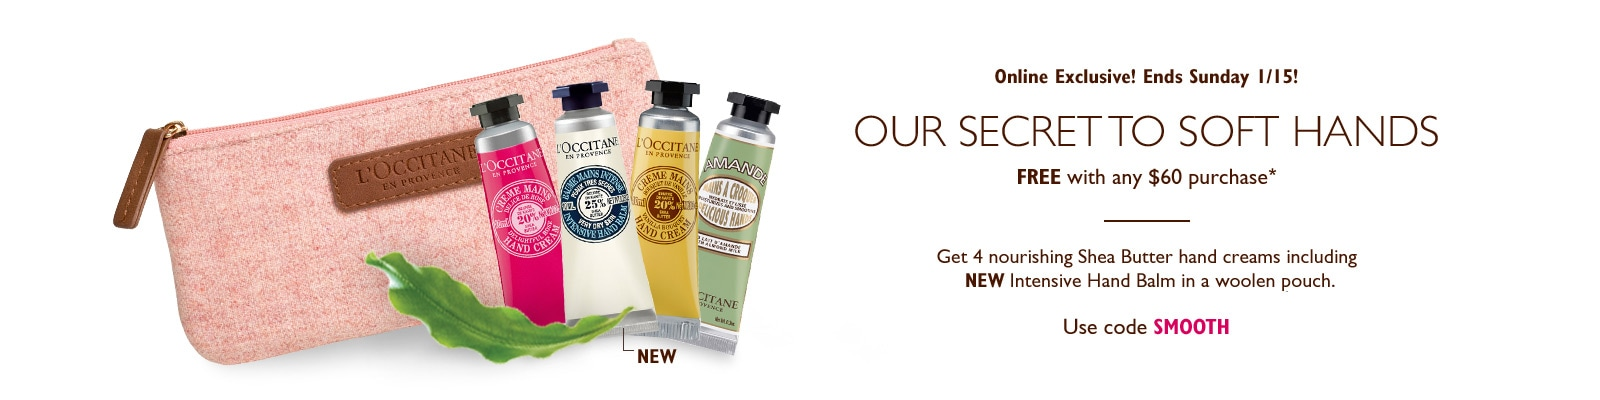 Receive a free 5- piece bonus gift with your $60 L'Occitane purchase